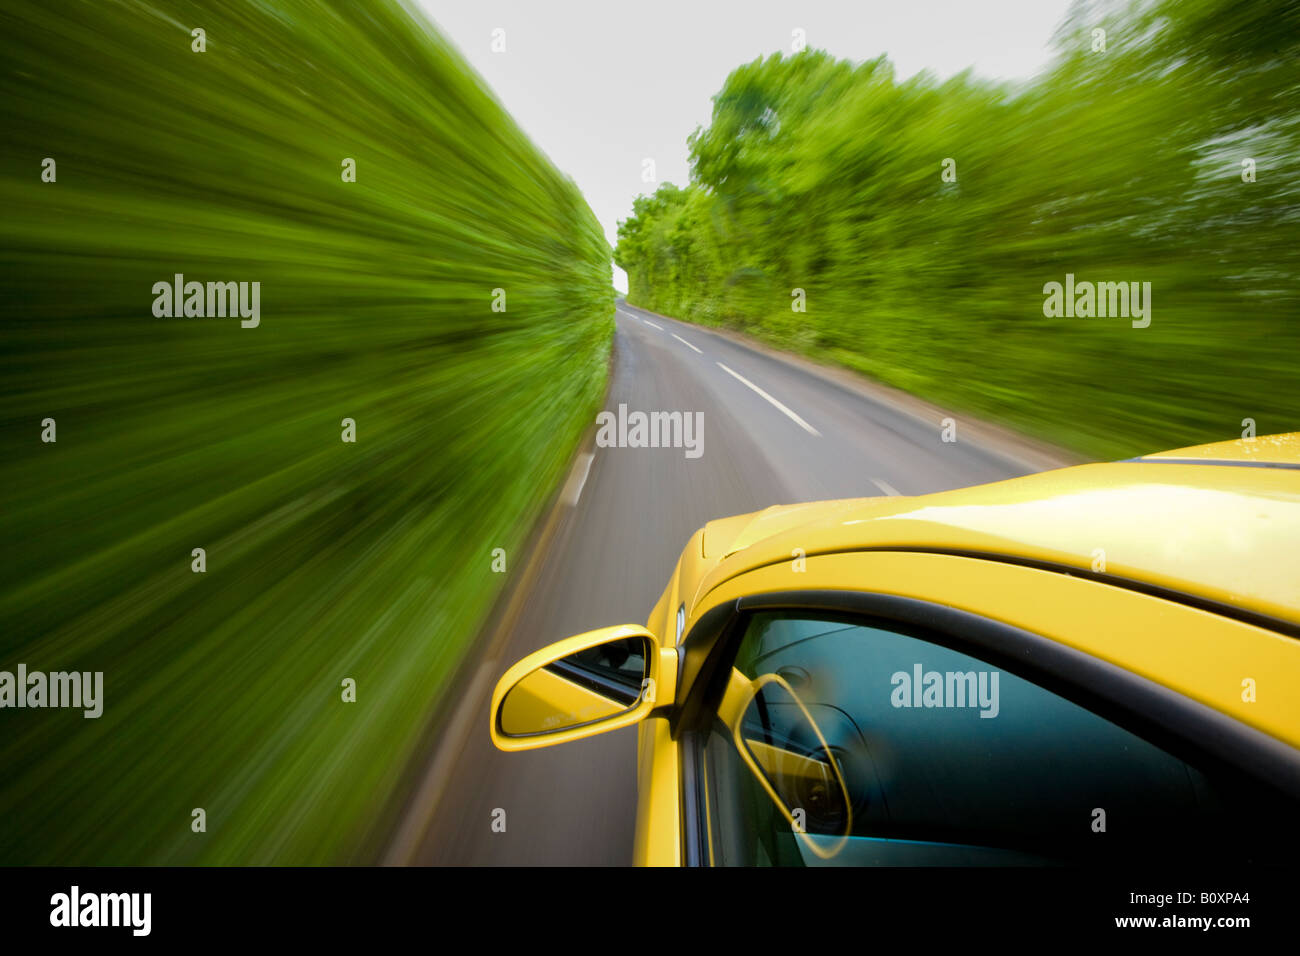 Yellow car traveling down country lane at speed with lots of blur. - Stock Image